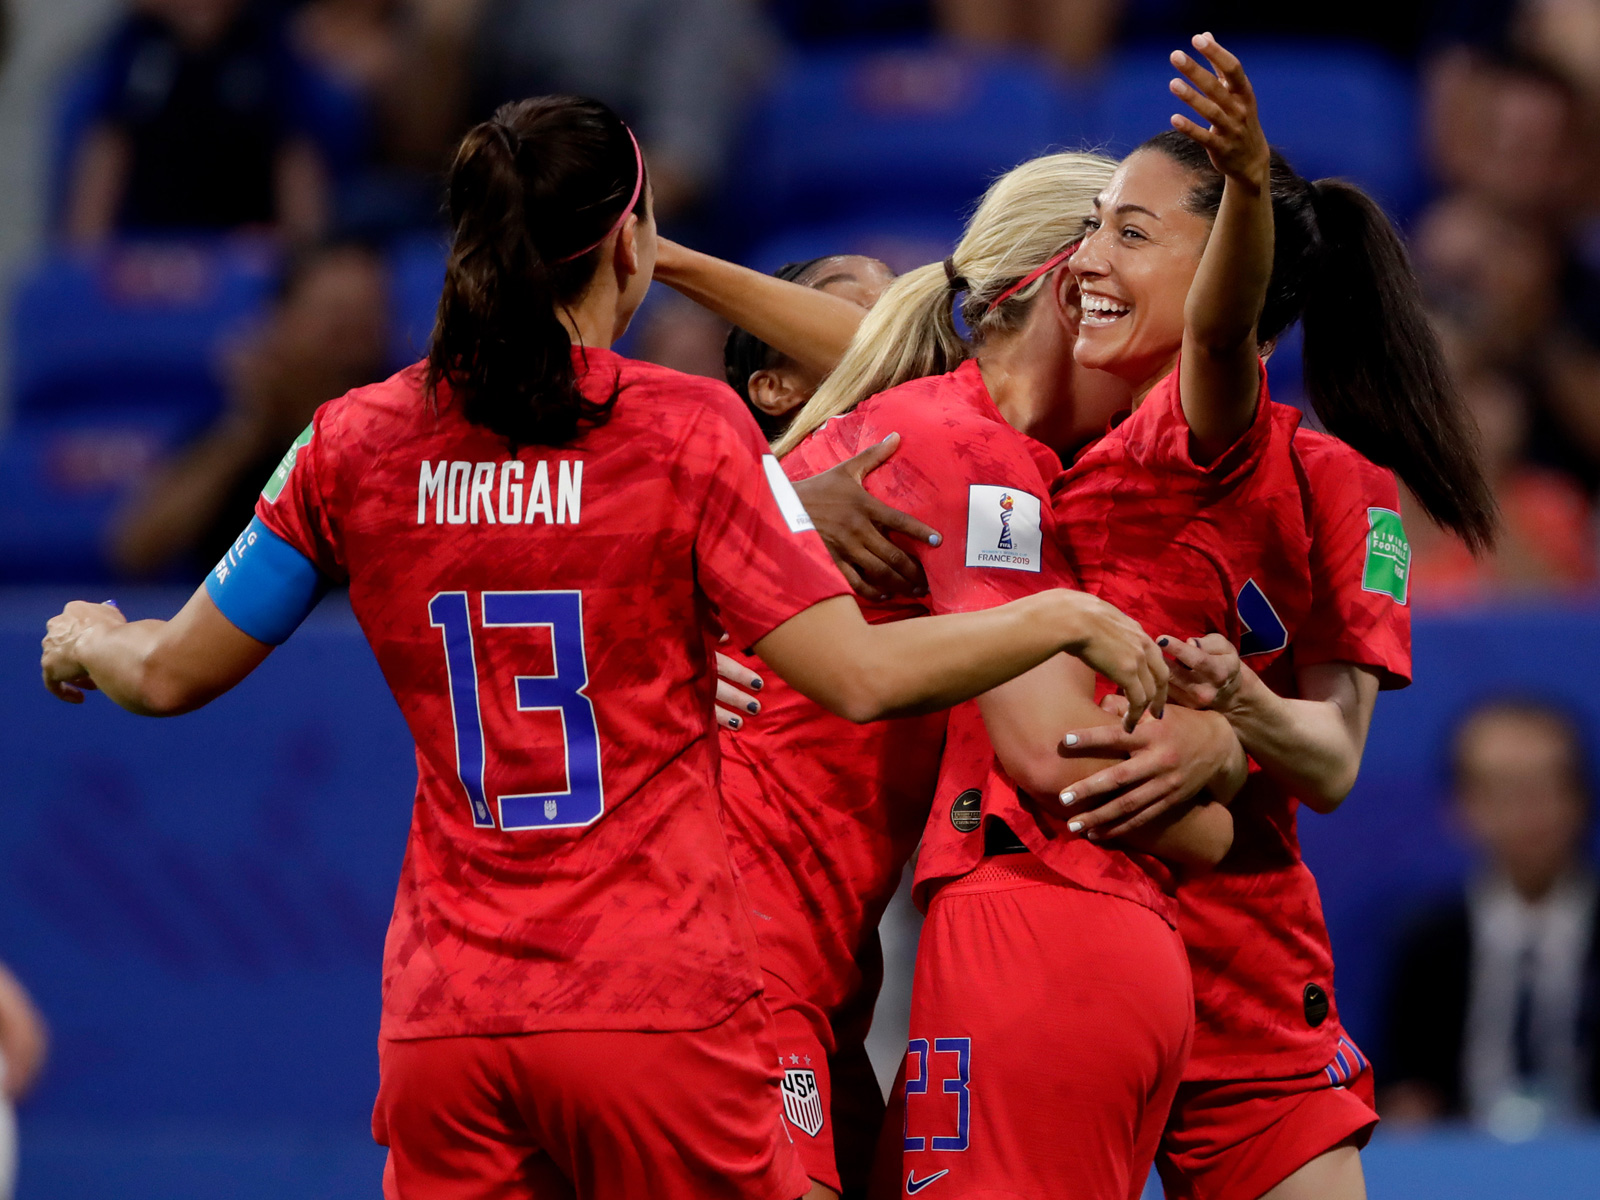 The USA beats England to return to the Women's World Cup final